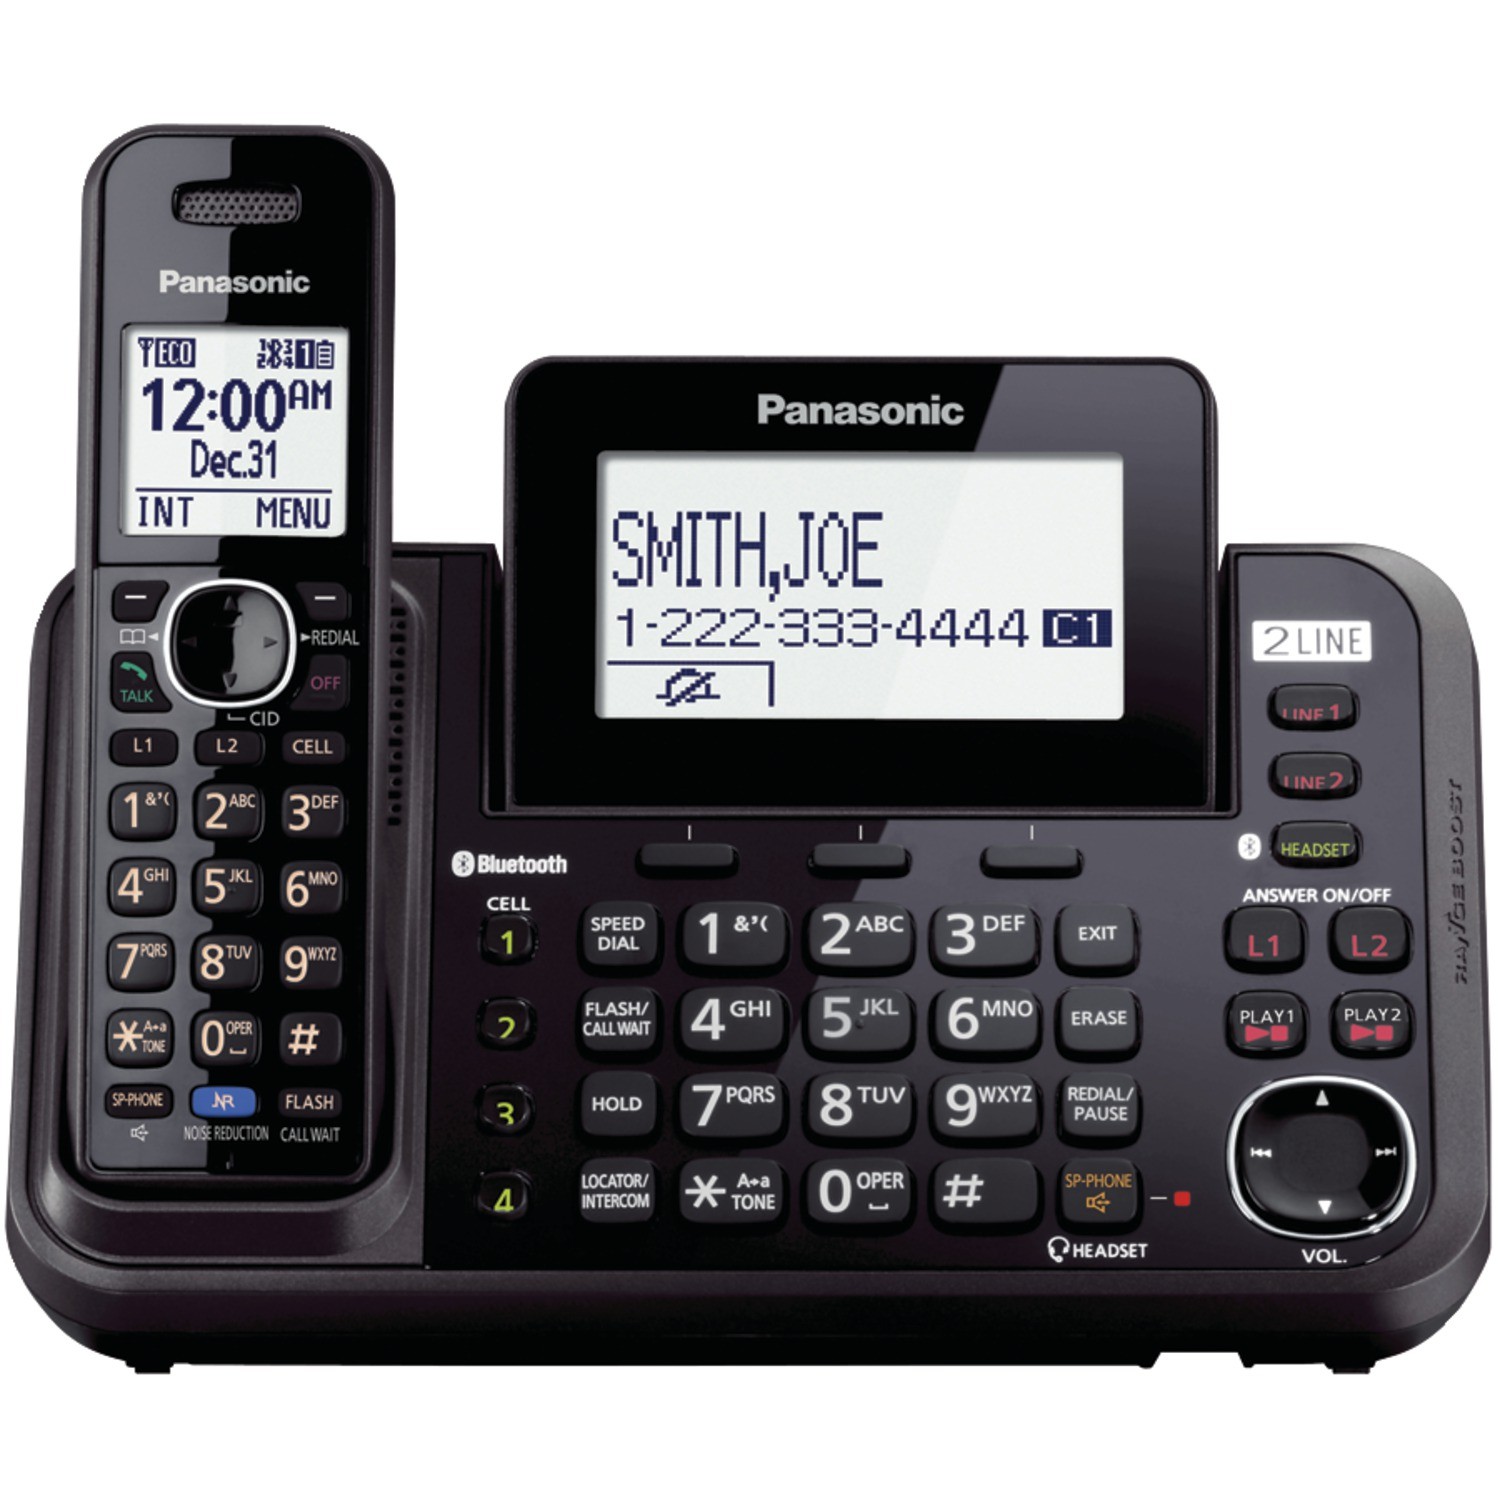 Panasonic Kx-tg9542b Dect 6.0 Link2cell 2-line 2-handset Bluetooth Phone System